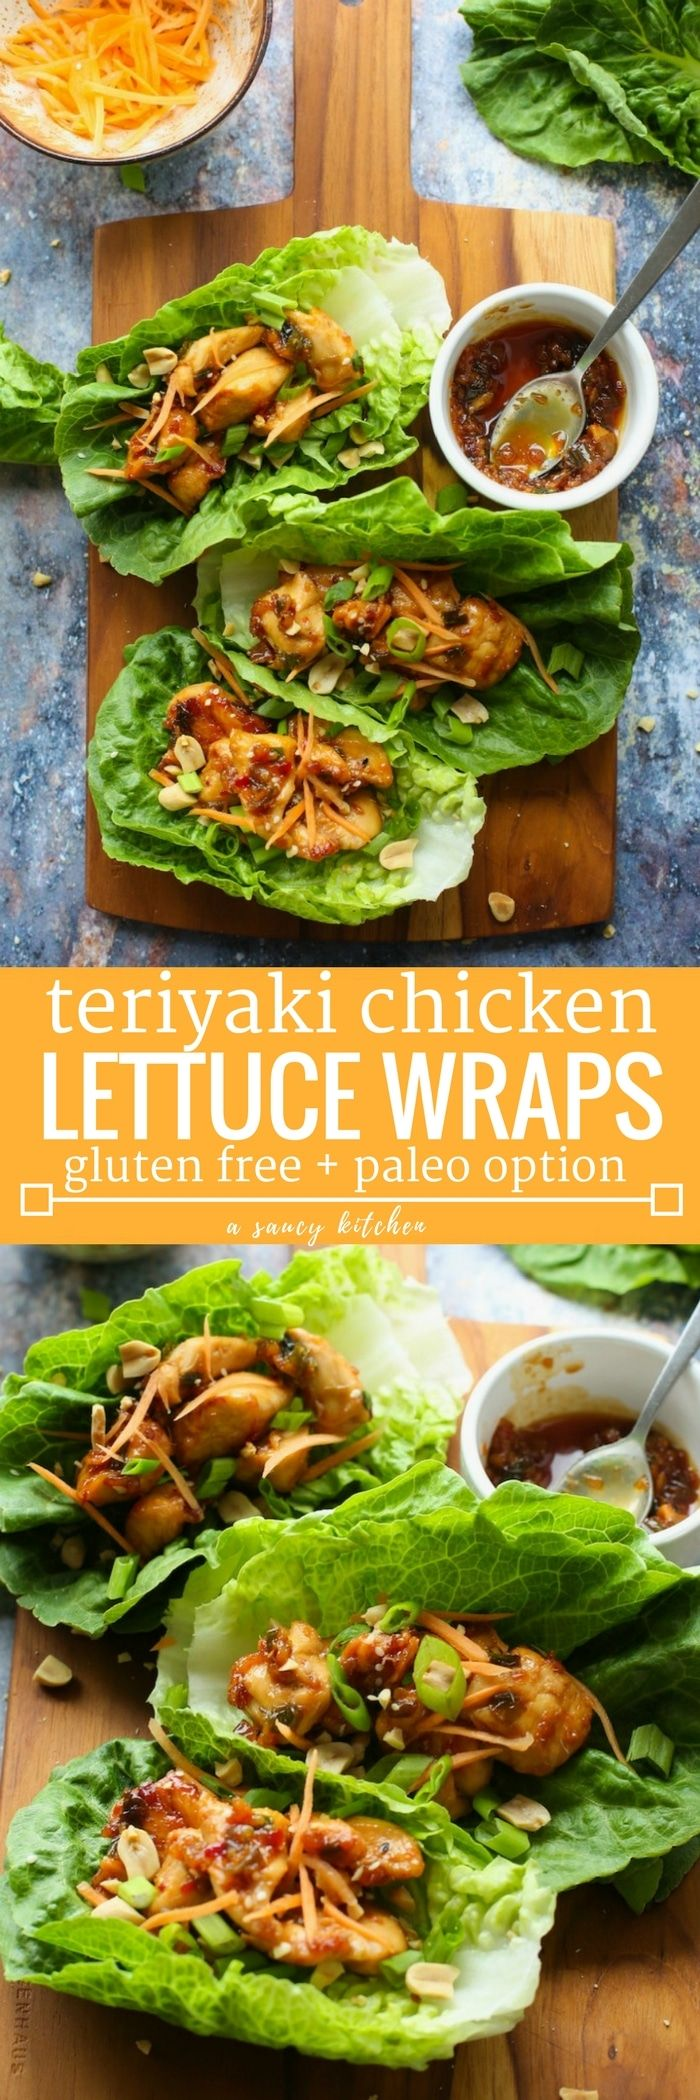 20-minute Teriyaki Chicken Lettuce Wraps. Makes for a quick and healthy lunch or dinner.